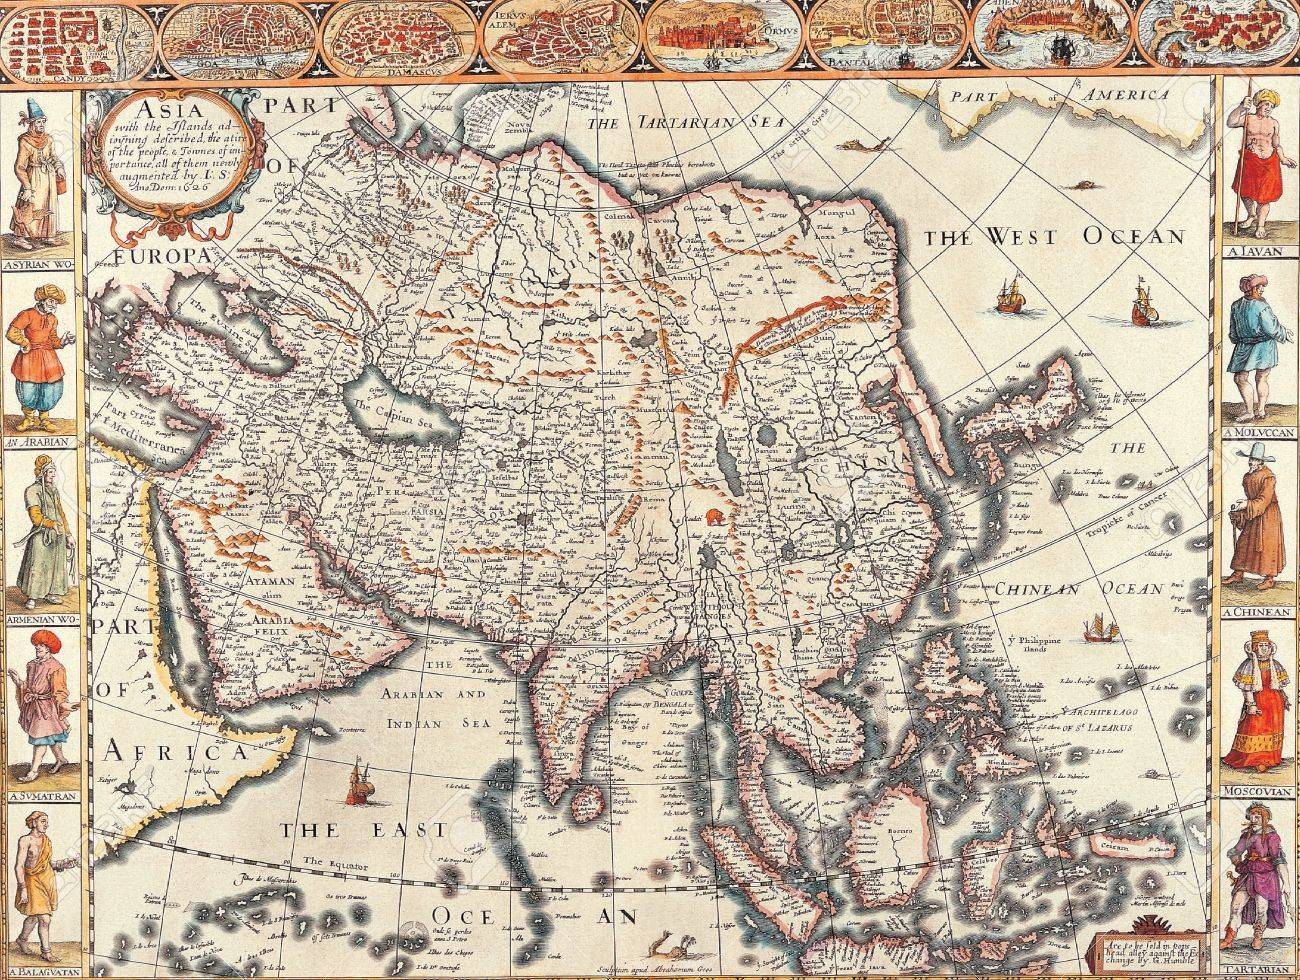 Global Map Of Asia.Antique Maps Of The Worldmap Of Asiajohn Speedc 1626